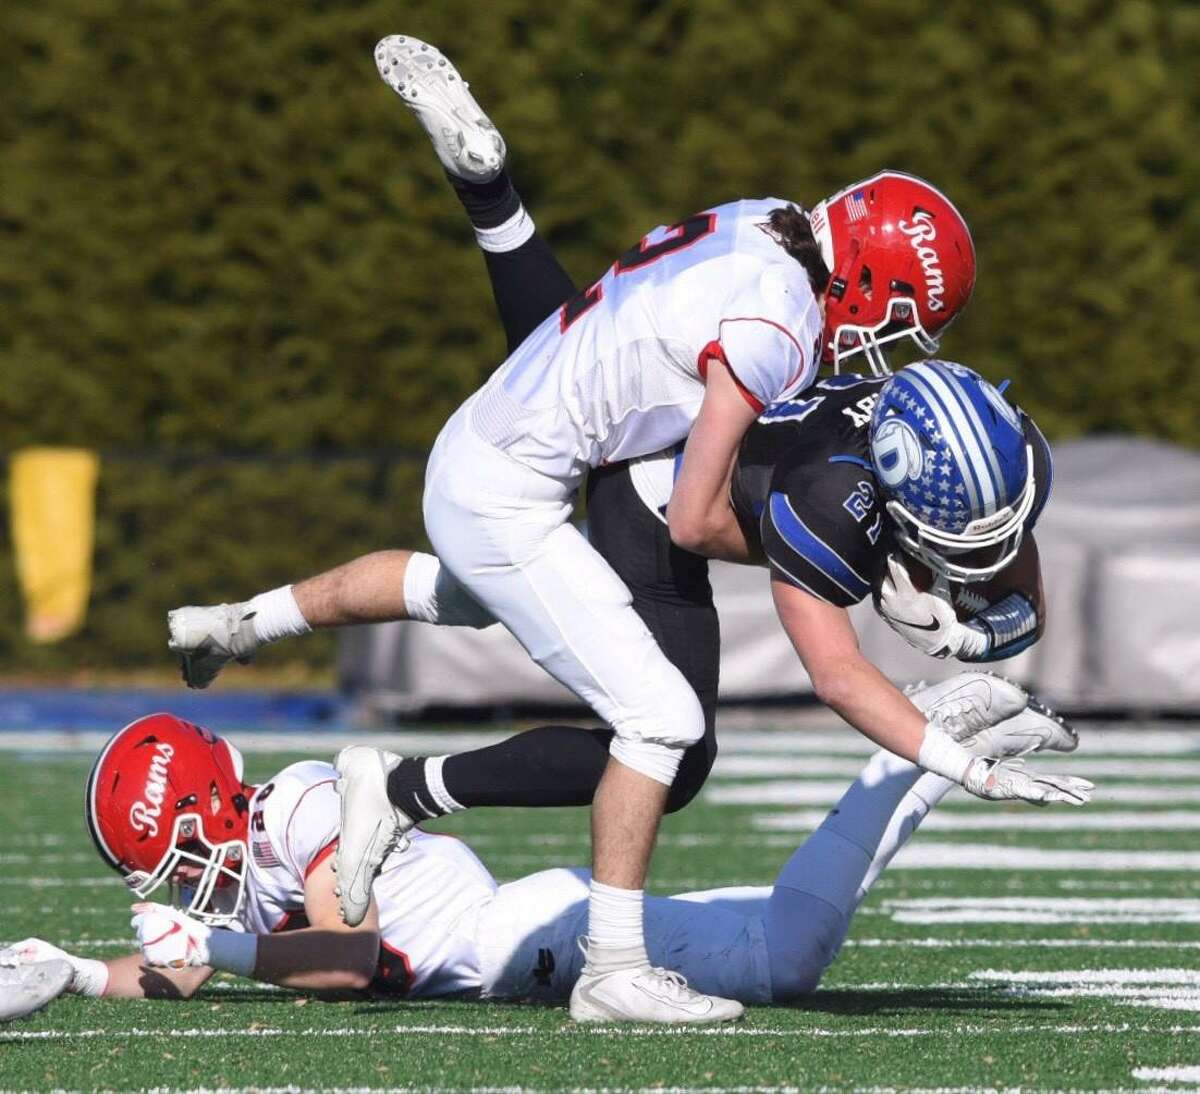 Darien's Will Kirby (21) is tackled by New Canaan's Jack Finningan (2) during the annual Turkey Bowl football game at Darien High School on Thursday, November 28, 2019.